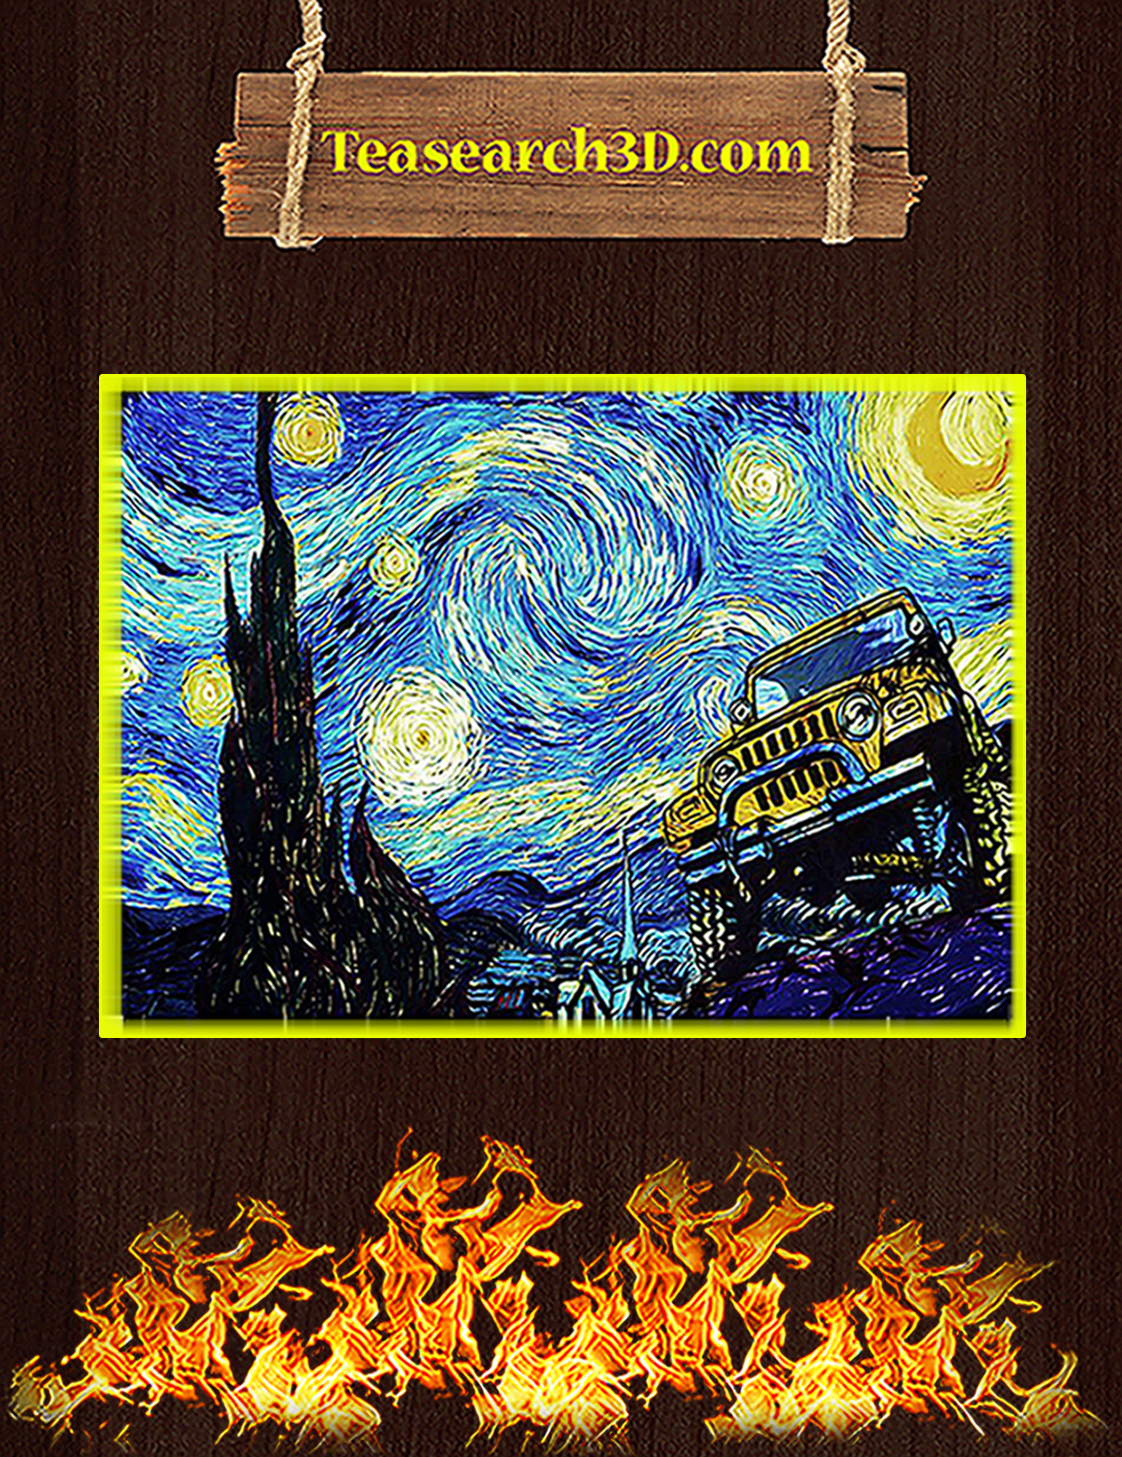 Jeep starry night van gogh poster A3